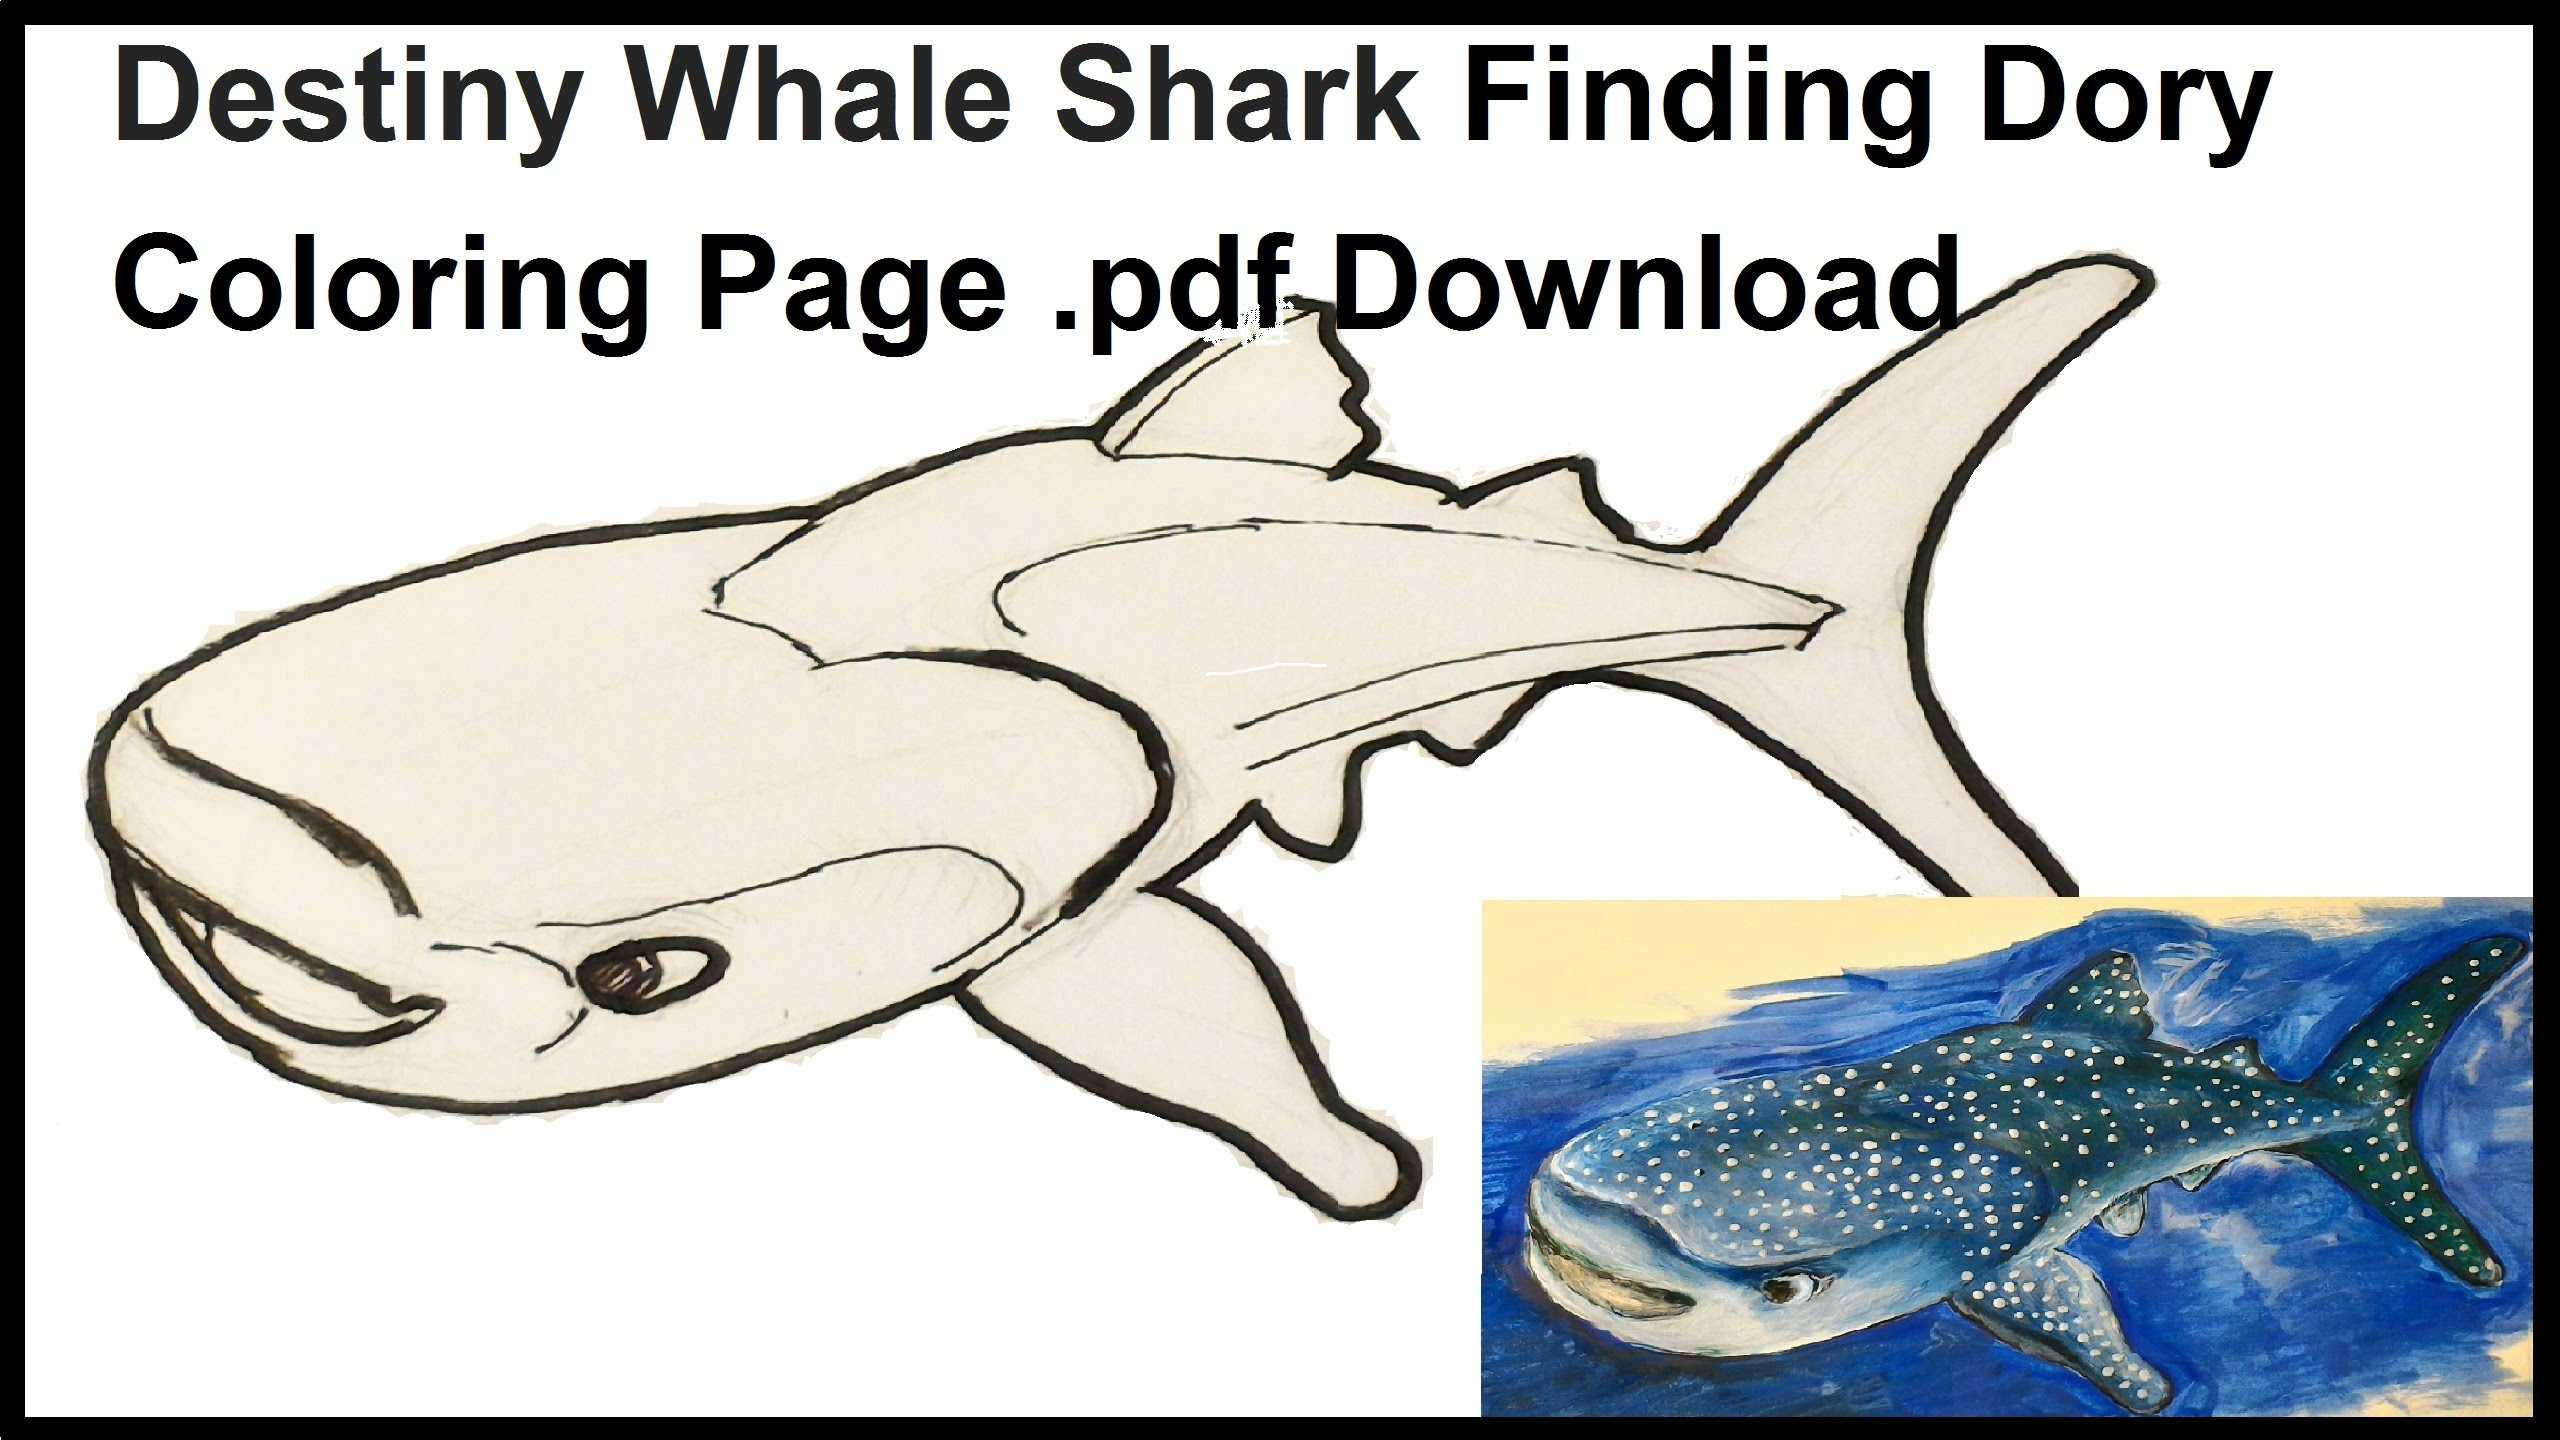 Finding Nemo Worksheet as Well as Whale Shark Coloring Pages